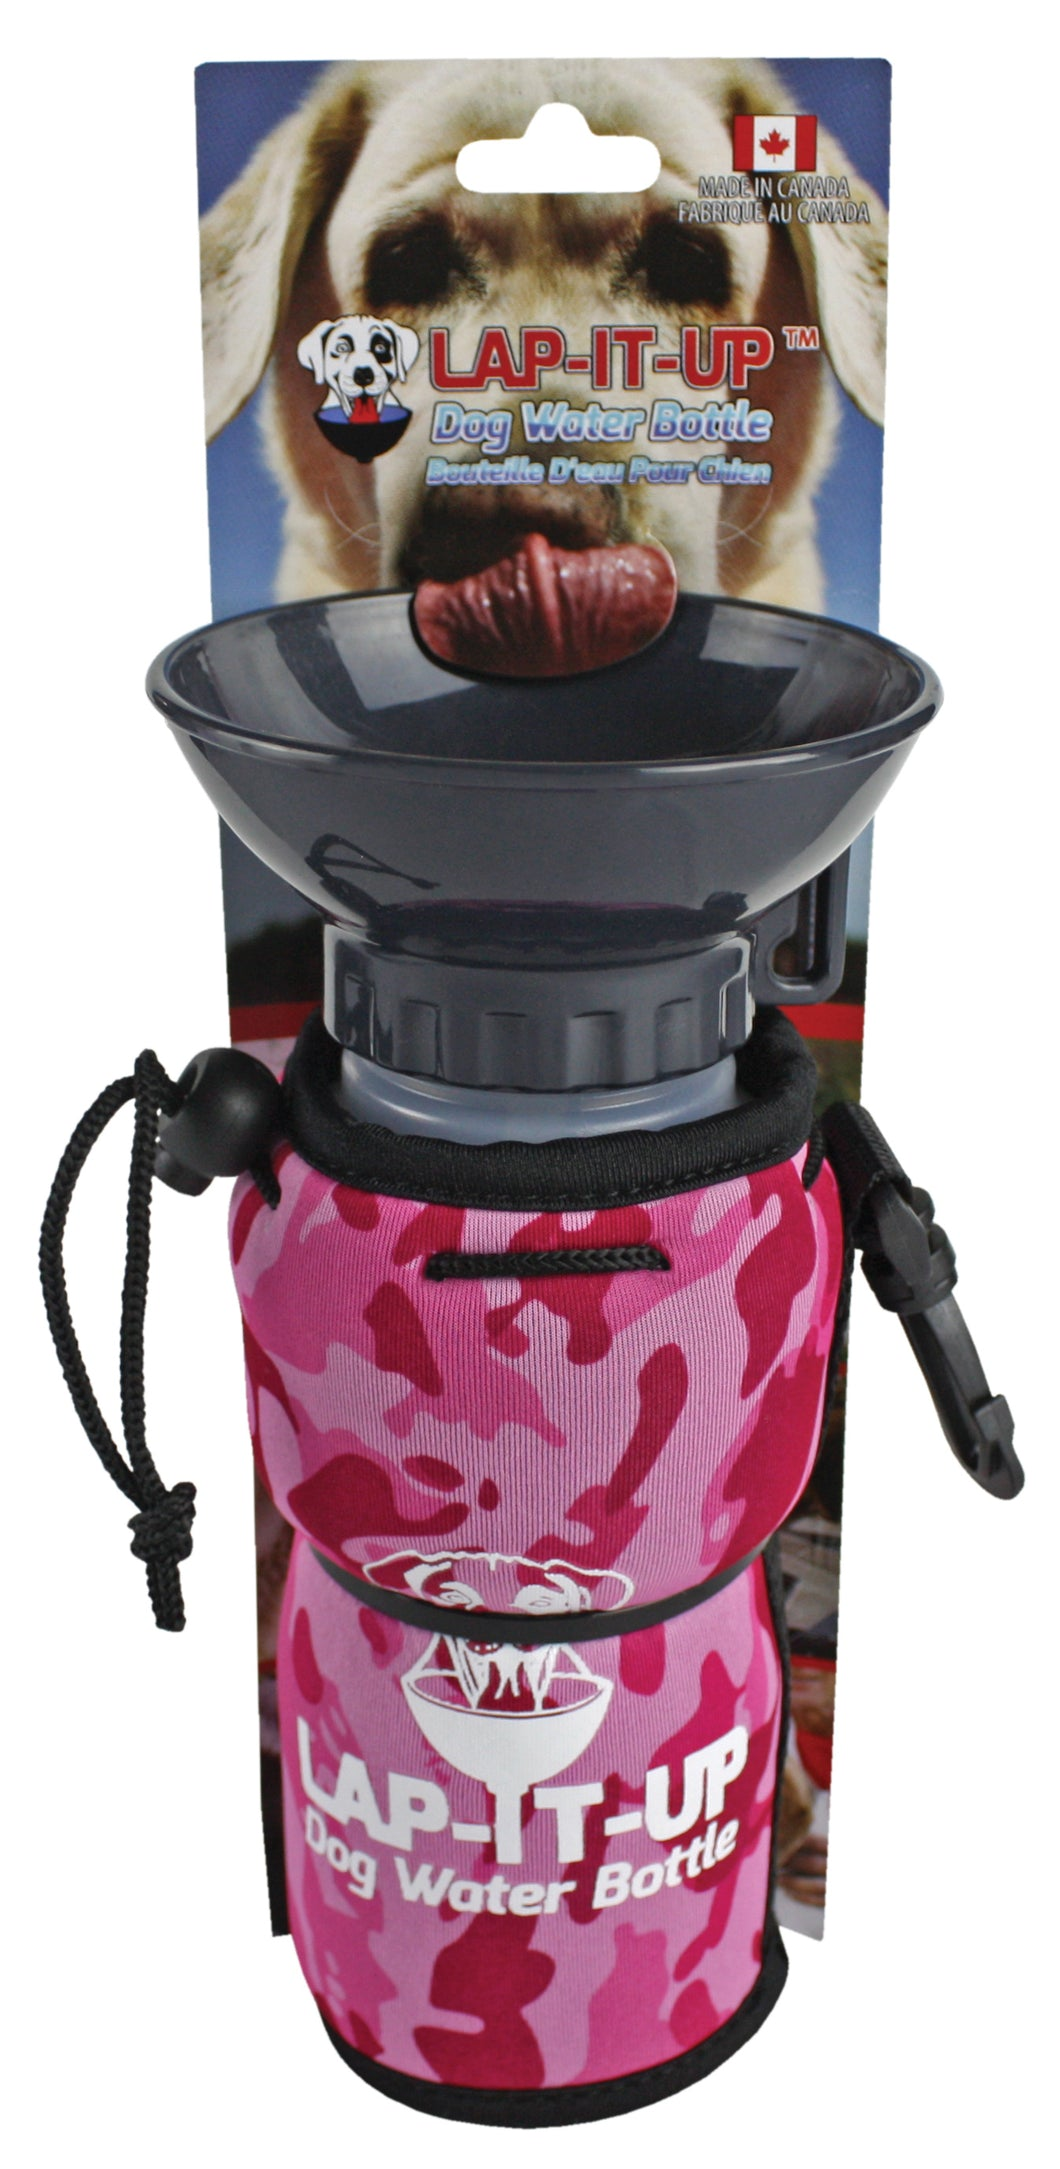 Lap-It-Up Dog Water Bottle - Pink